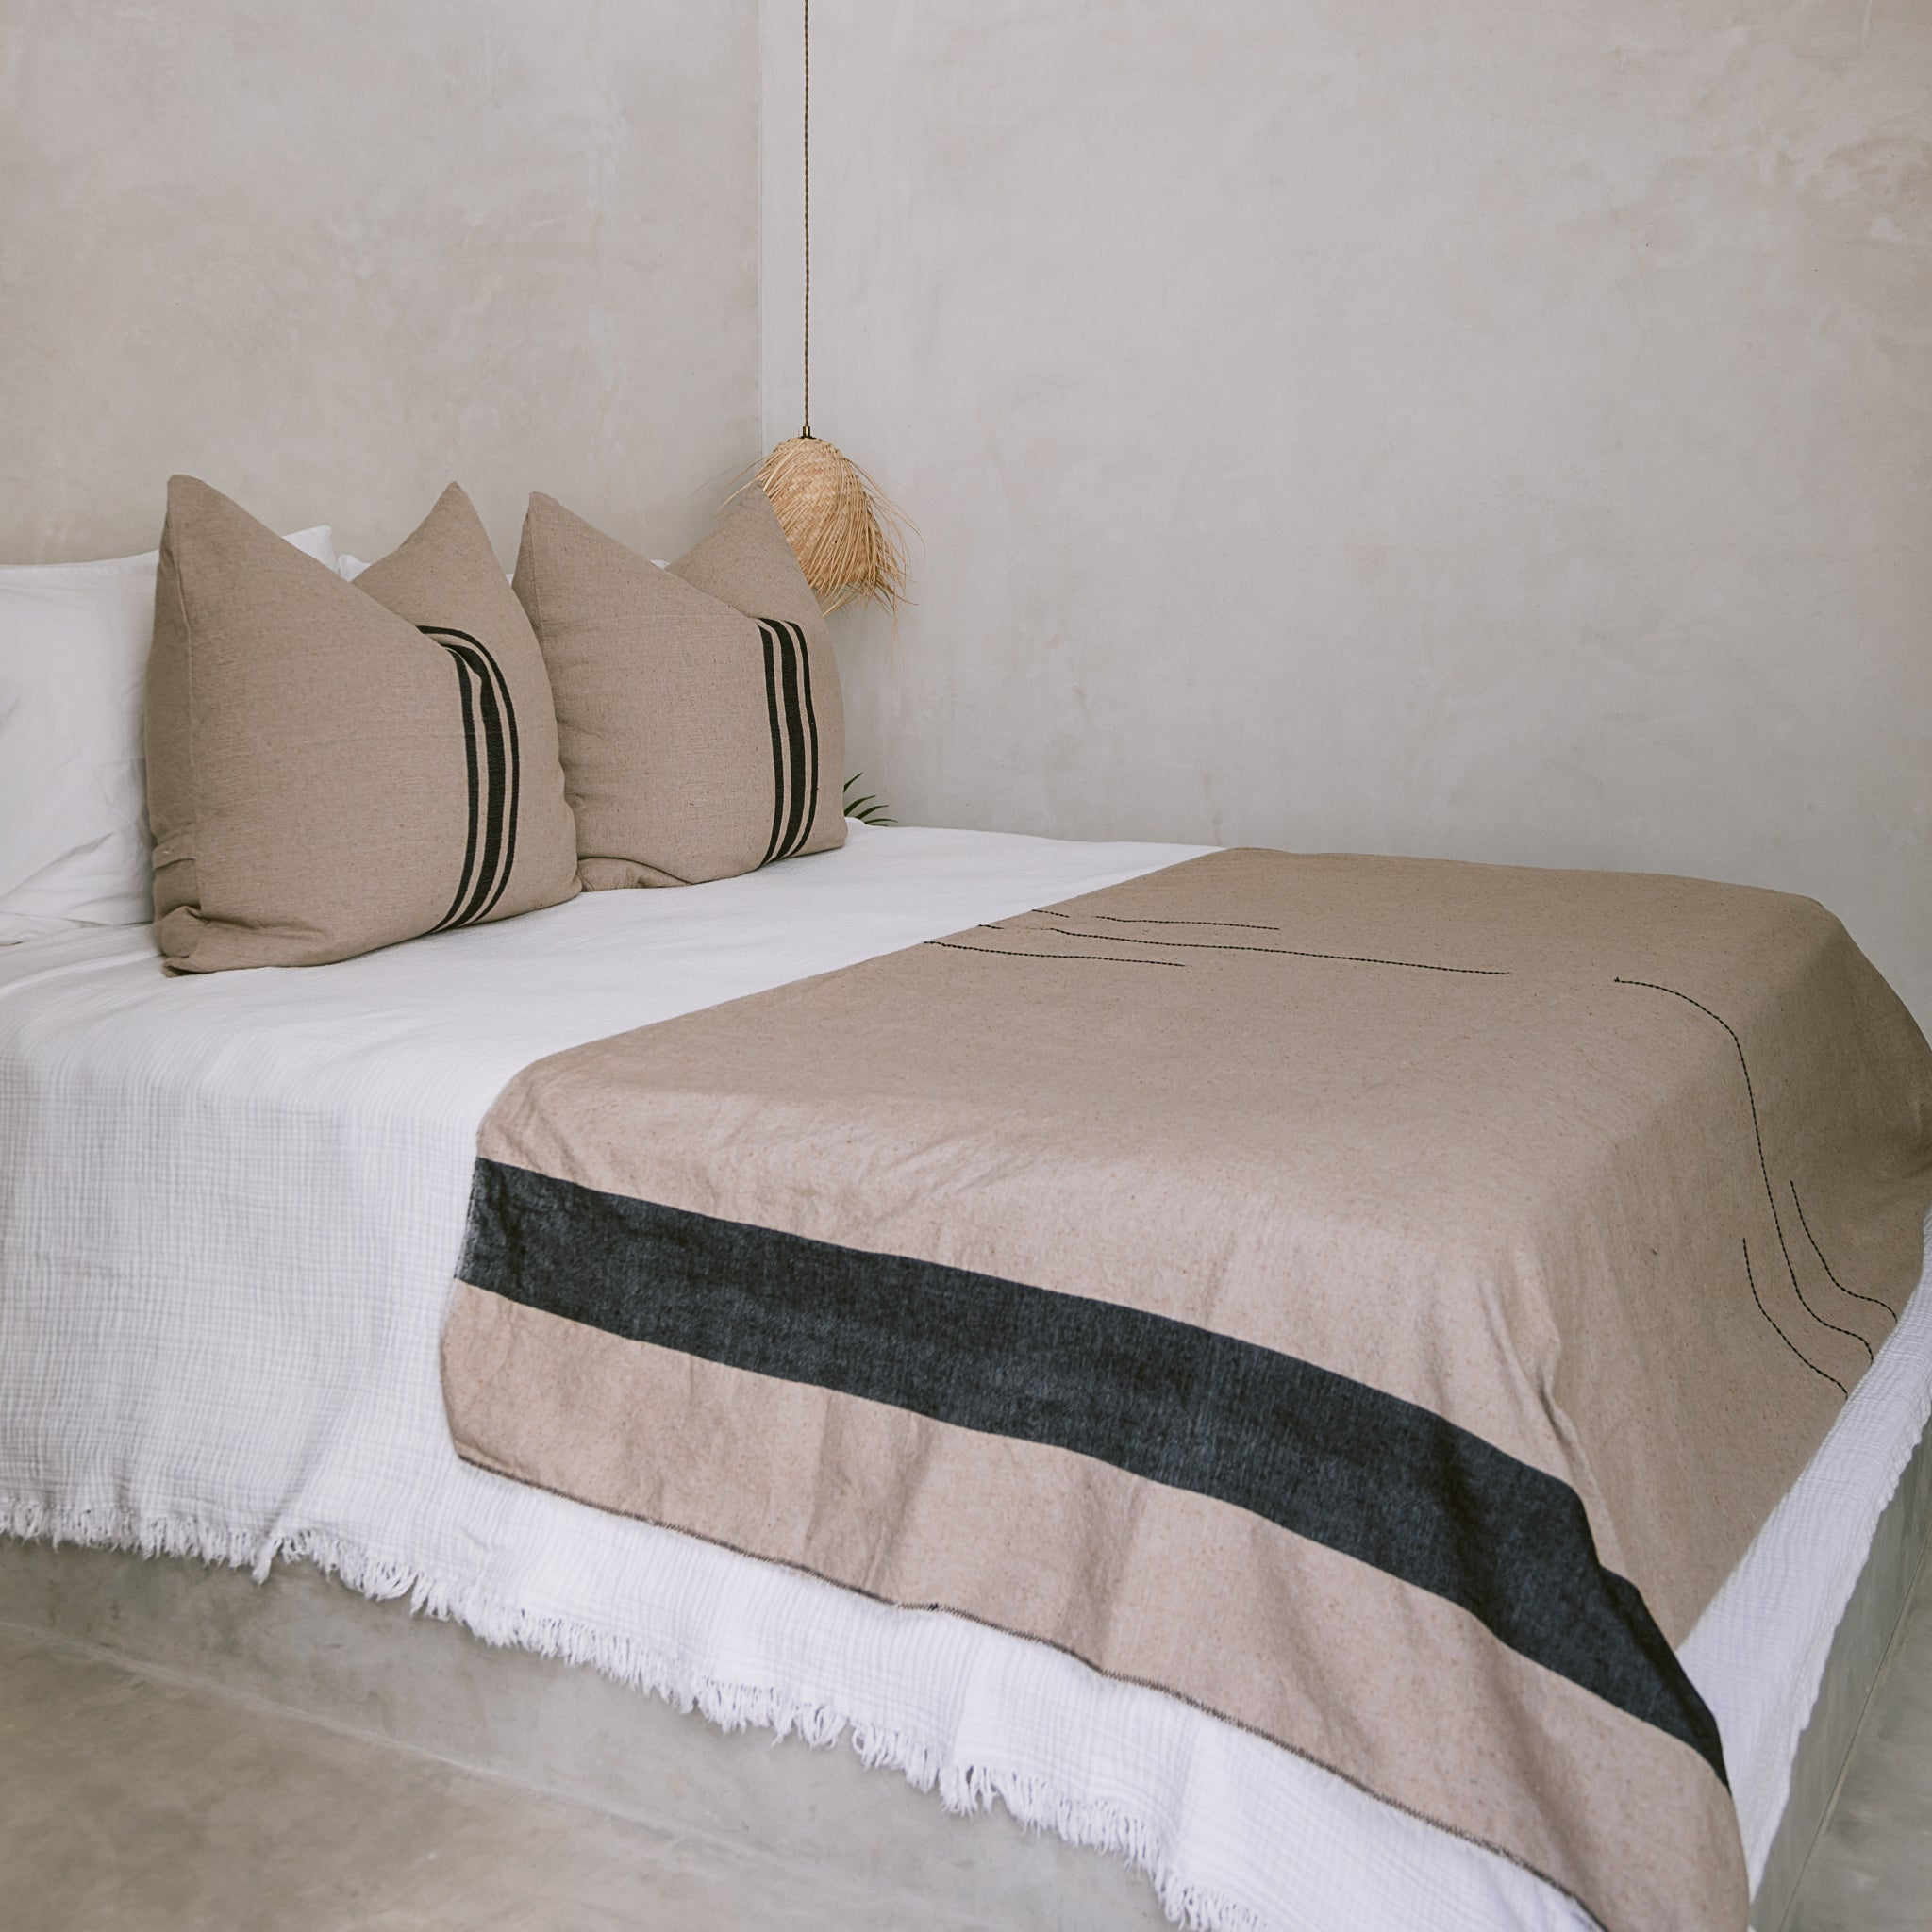 A bed neatly made with white sheets, an ecru-colored coverlet, and a pair of euro shams in matching ecru color.